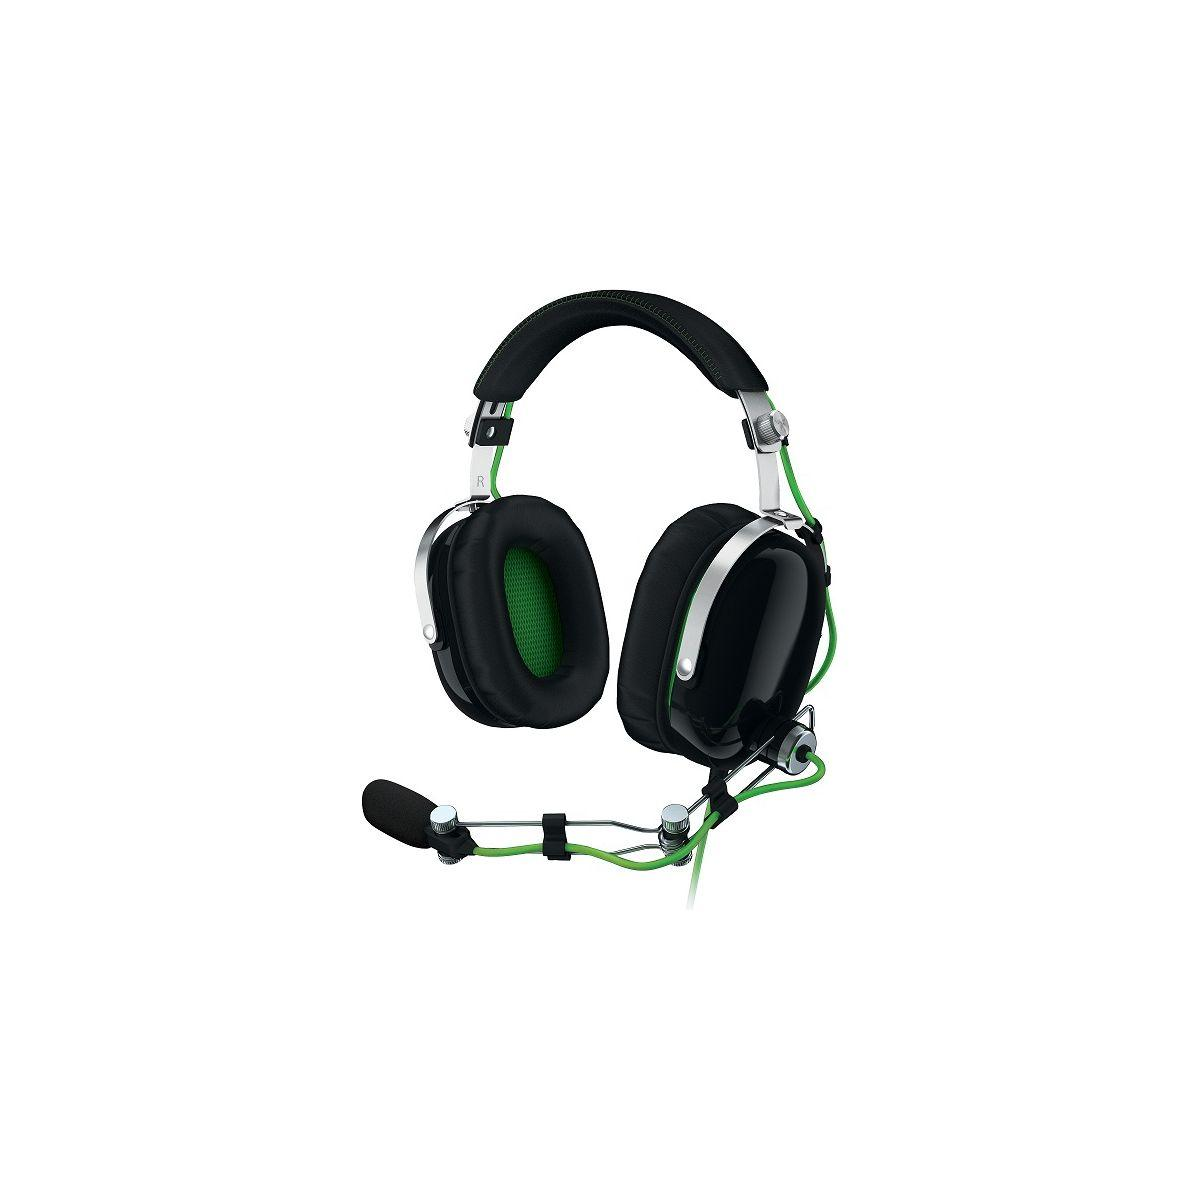 Casque micro gamer razer blackshark rz04-00720100-r - livraison offerte : code chronoff (photo)